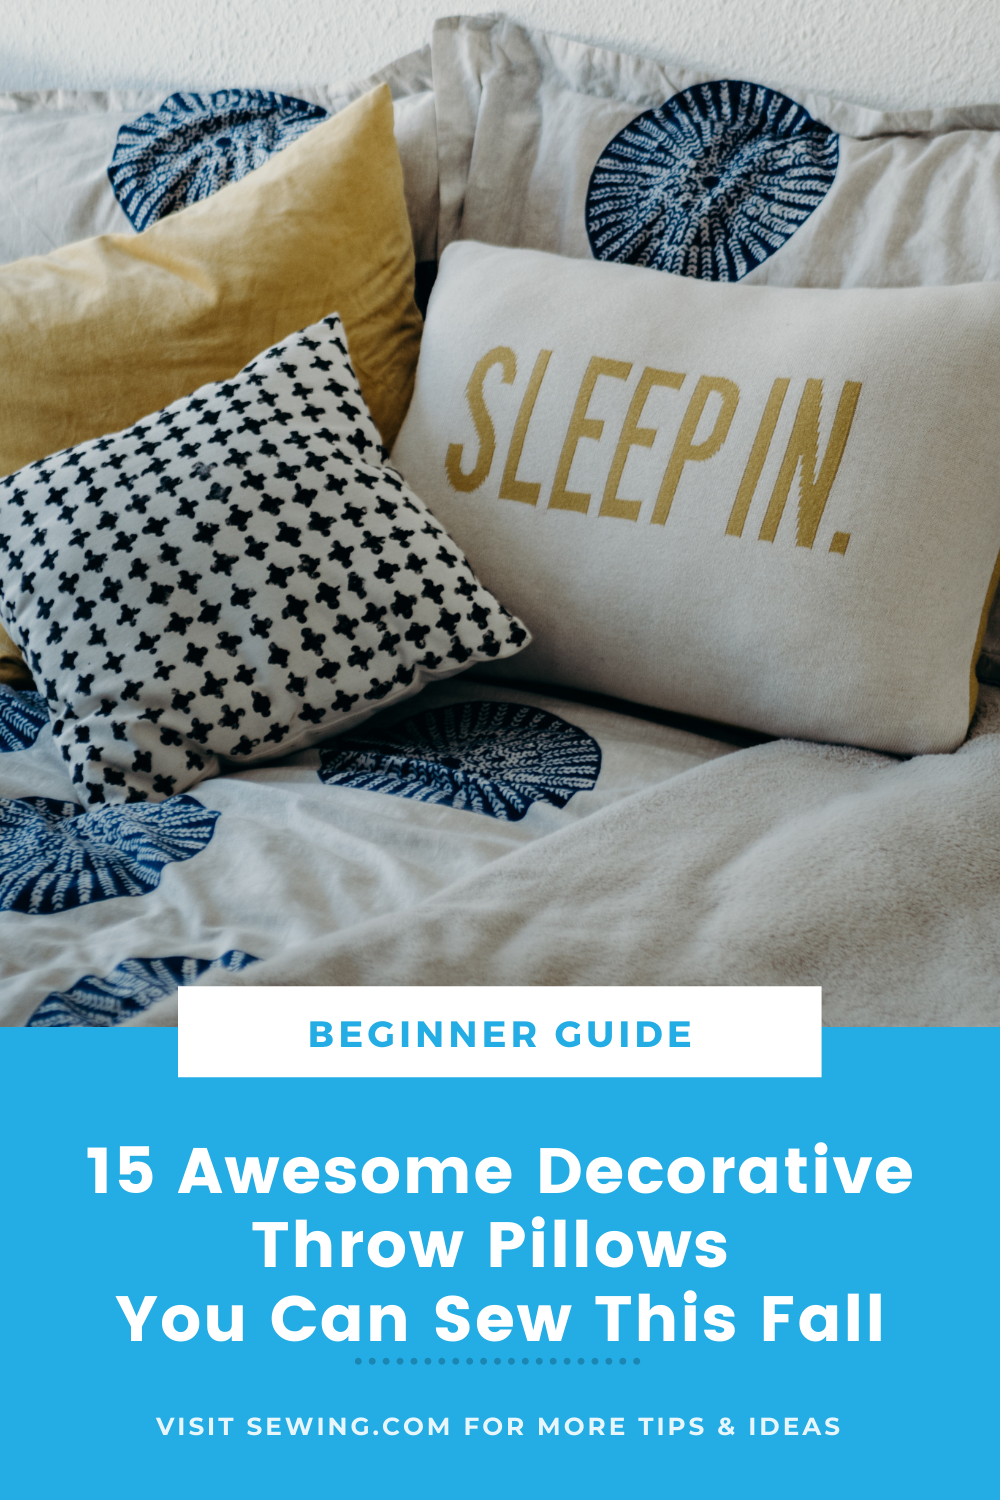 placard | 15 Awesome Decorative Throw Pillows You Can Sew This Fall